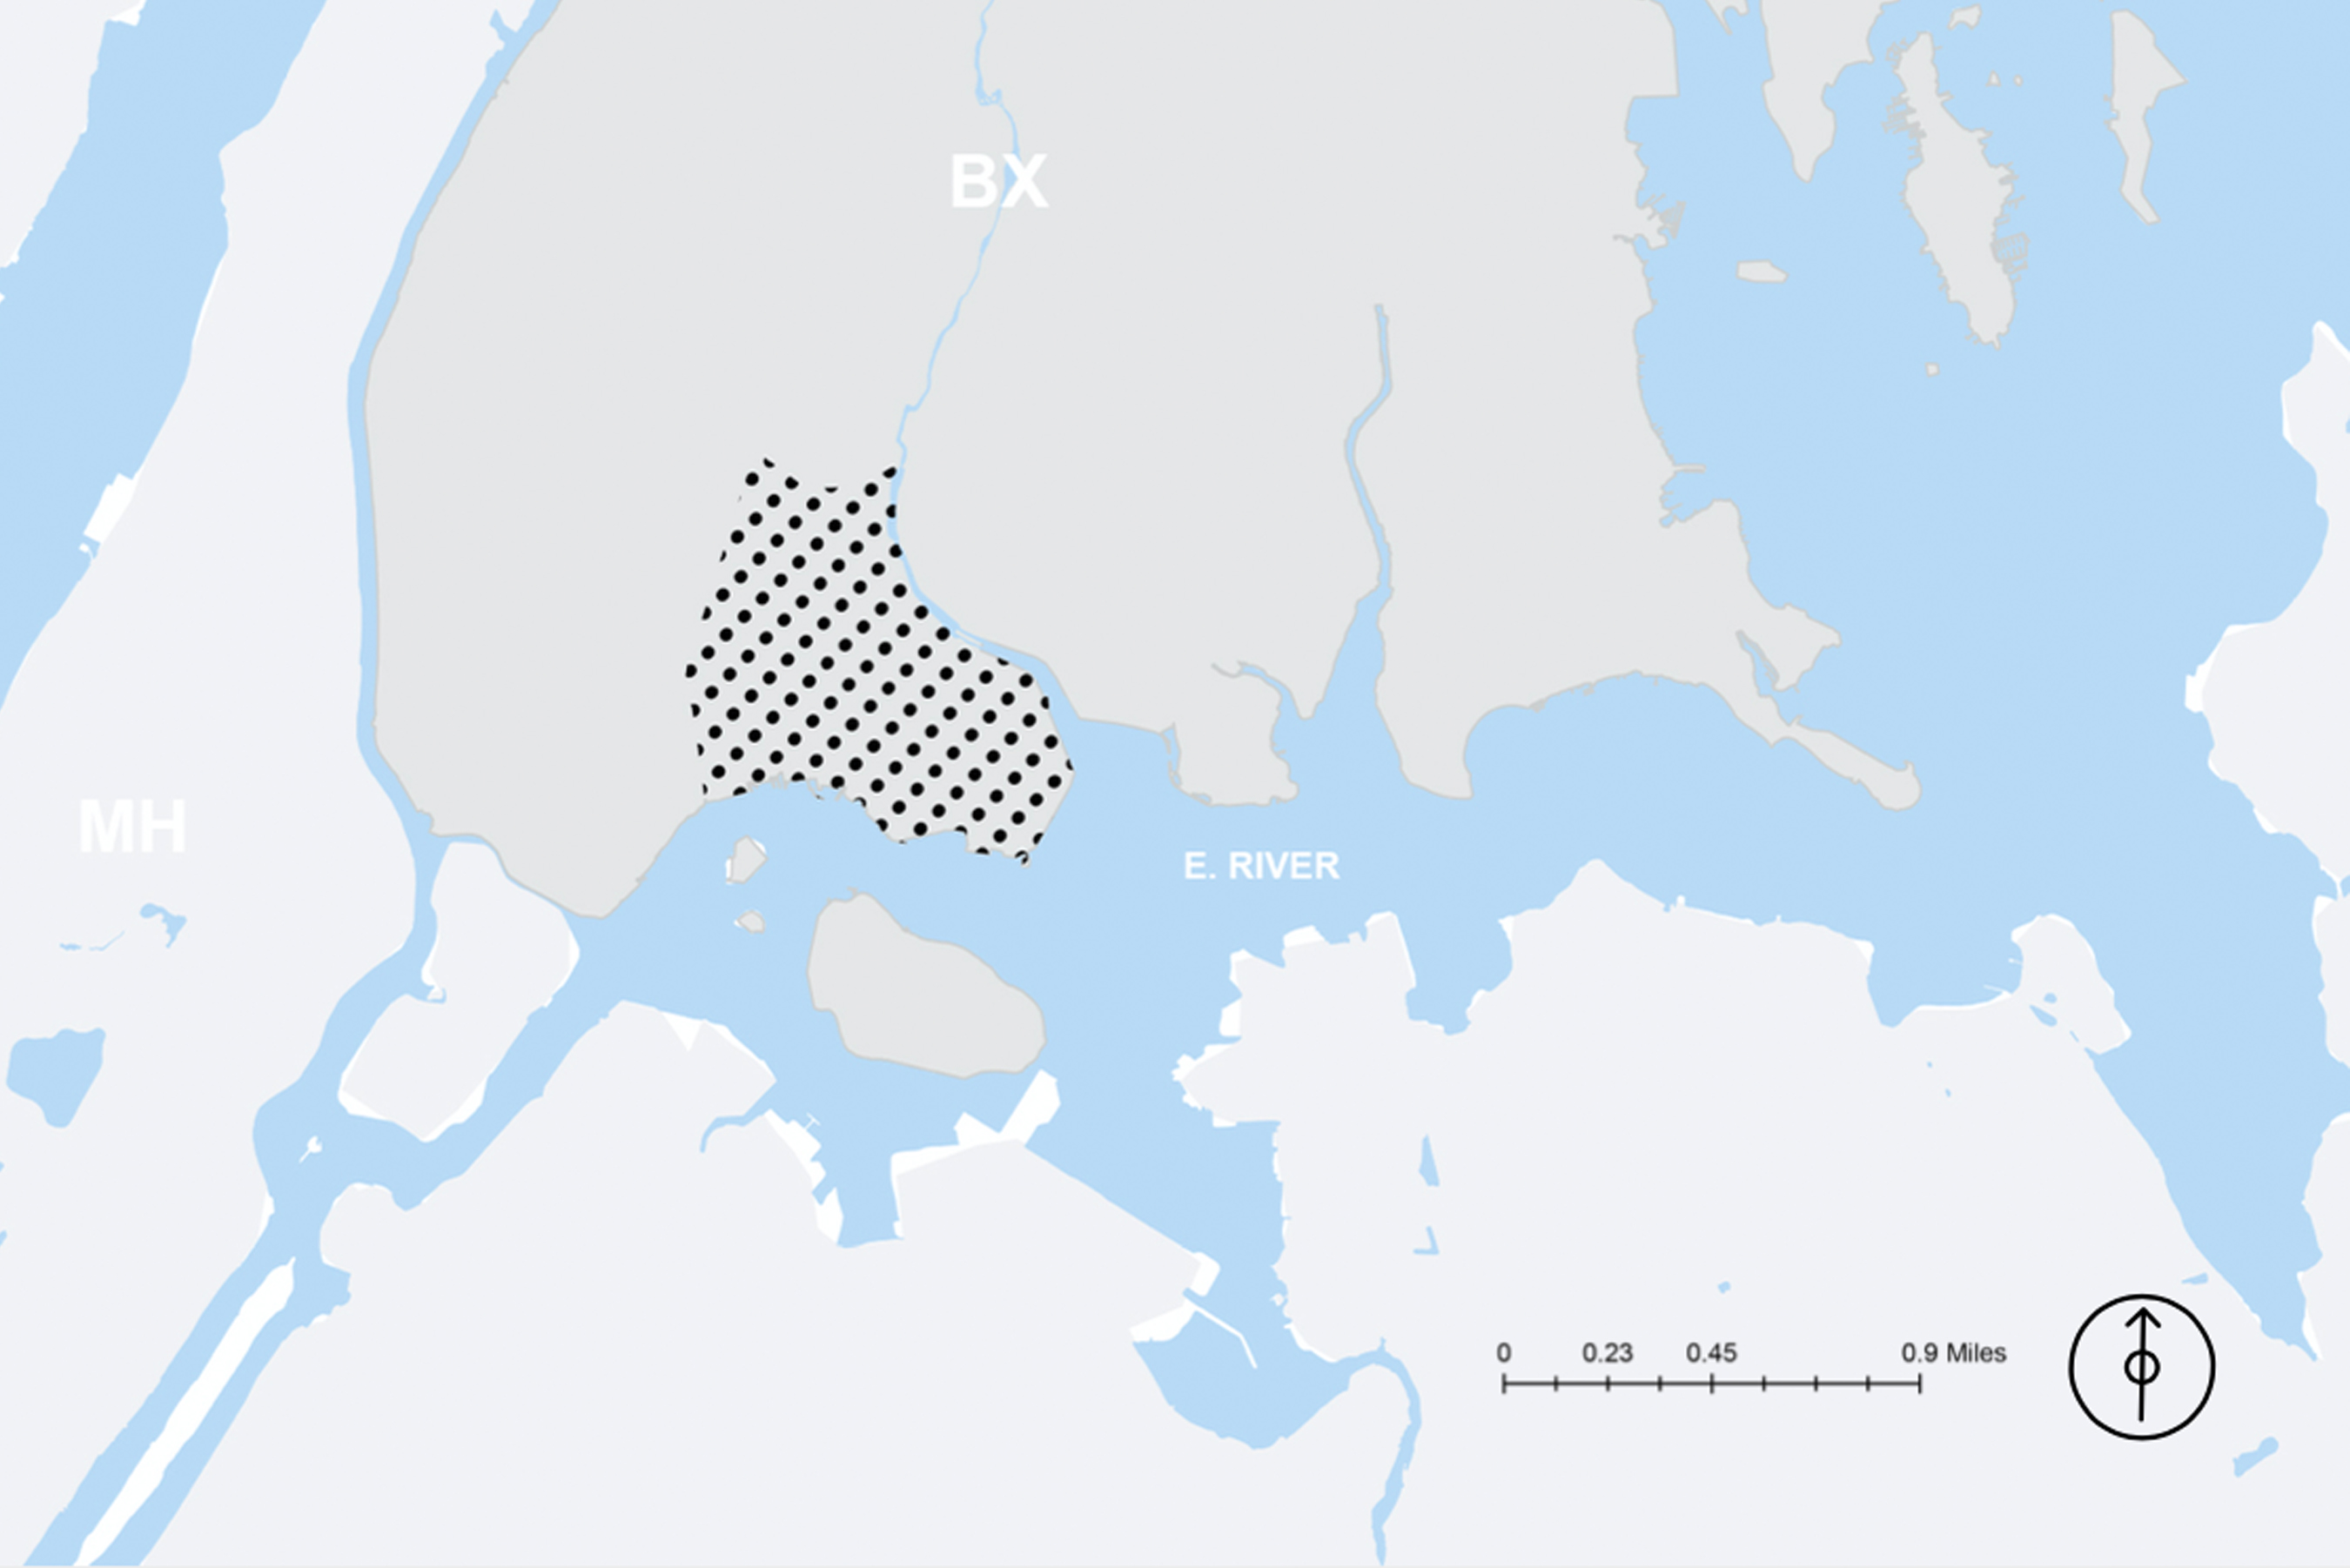 GIS View of PM2.5 in the Bronx